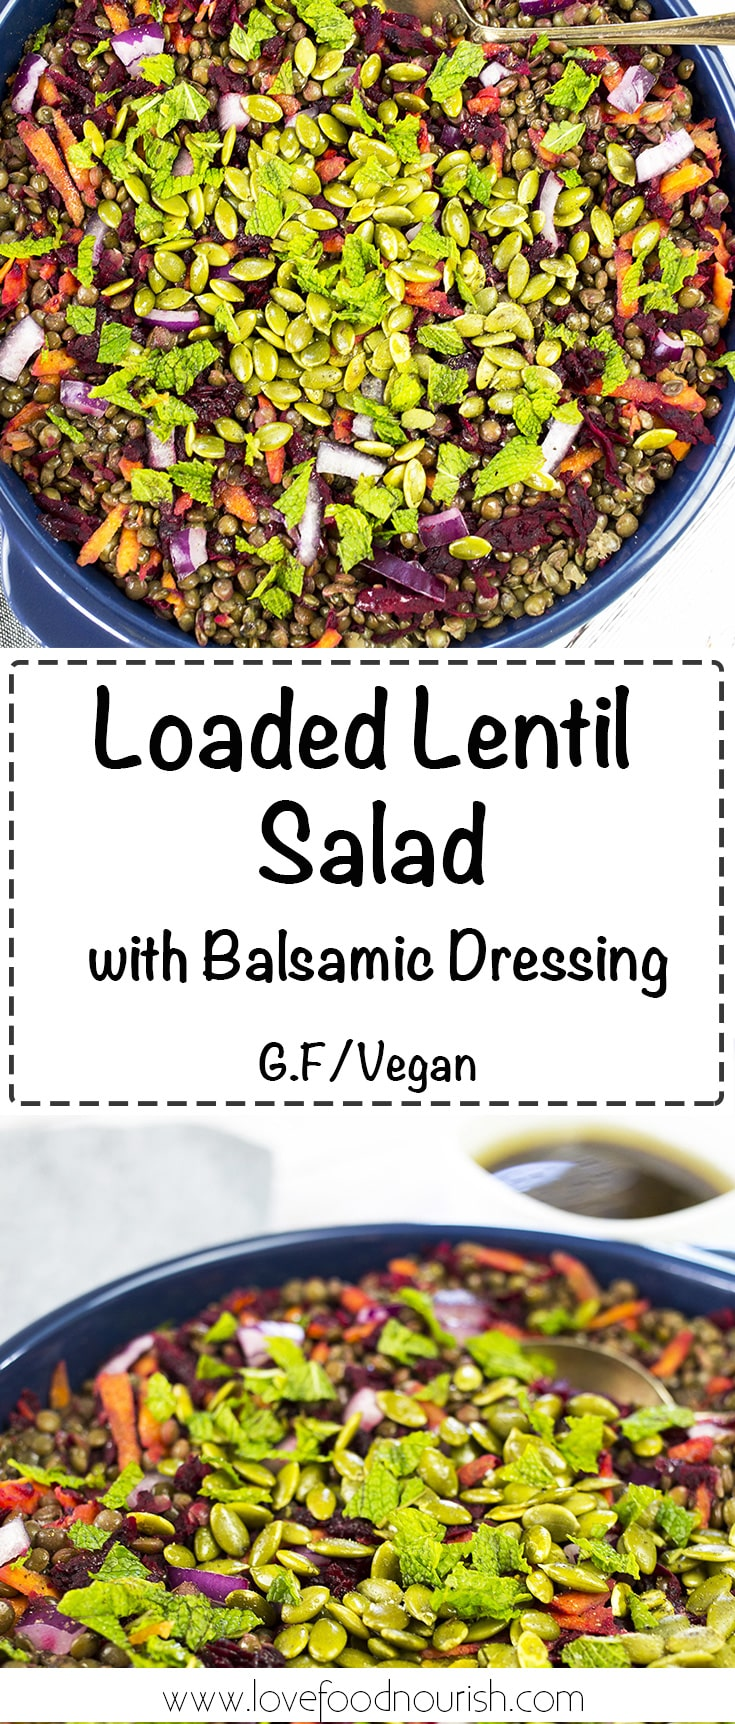 Lentil Salad loaded with antioxidant rich veggies and a delicious balsamic dressing. #glutenfree #vegan #lentils #salad